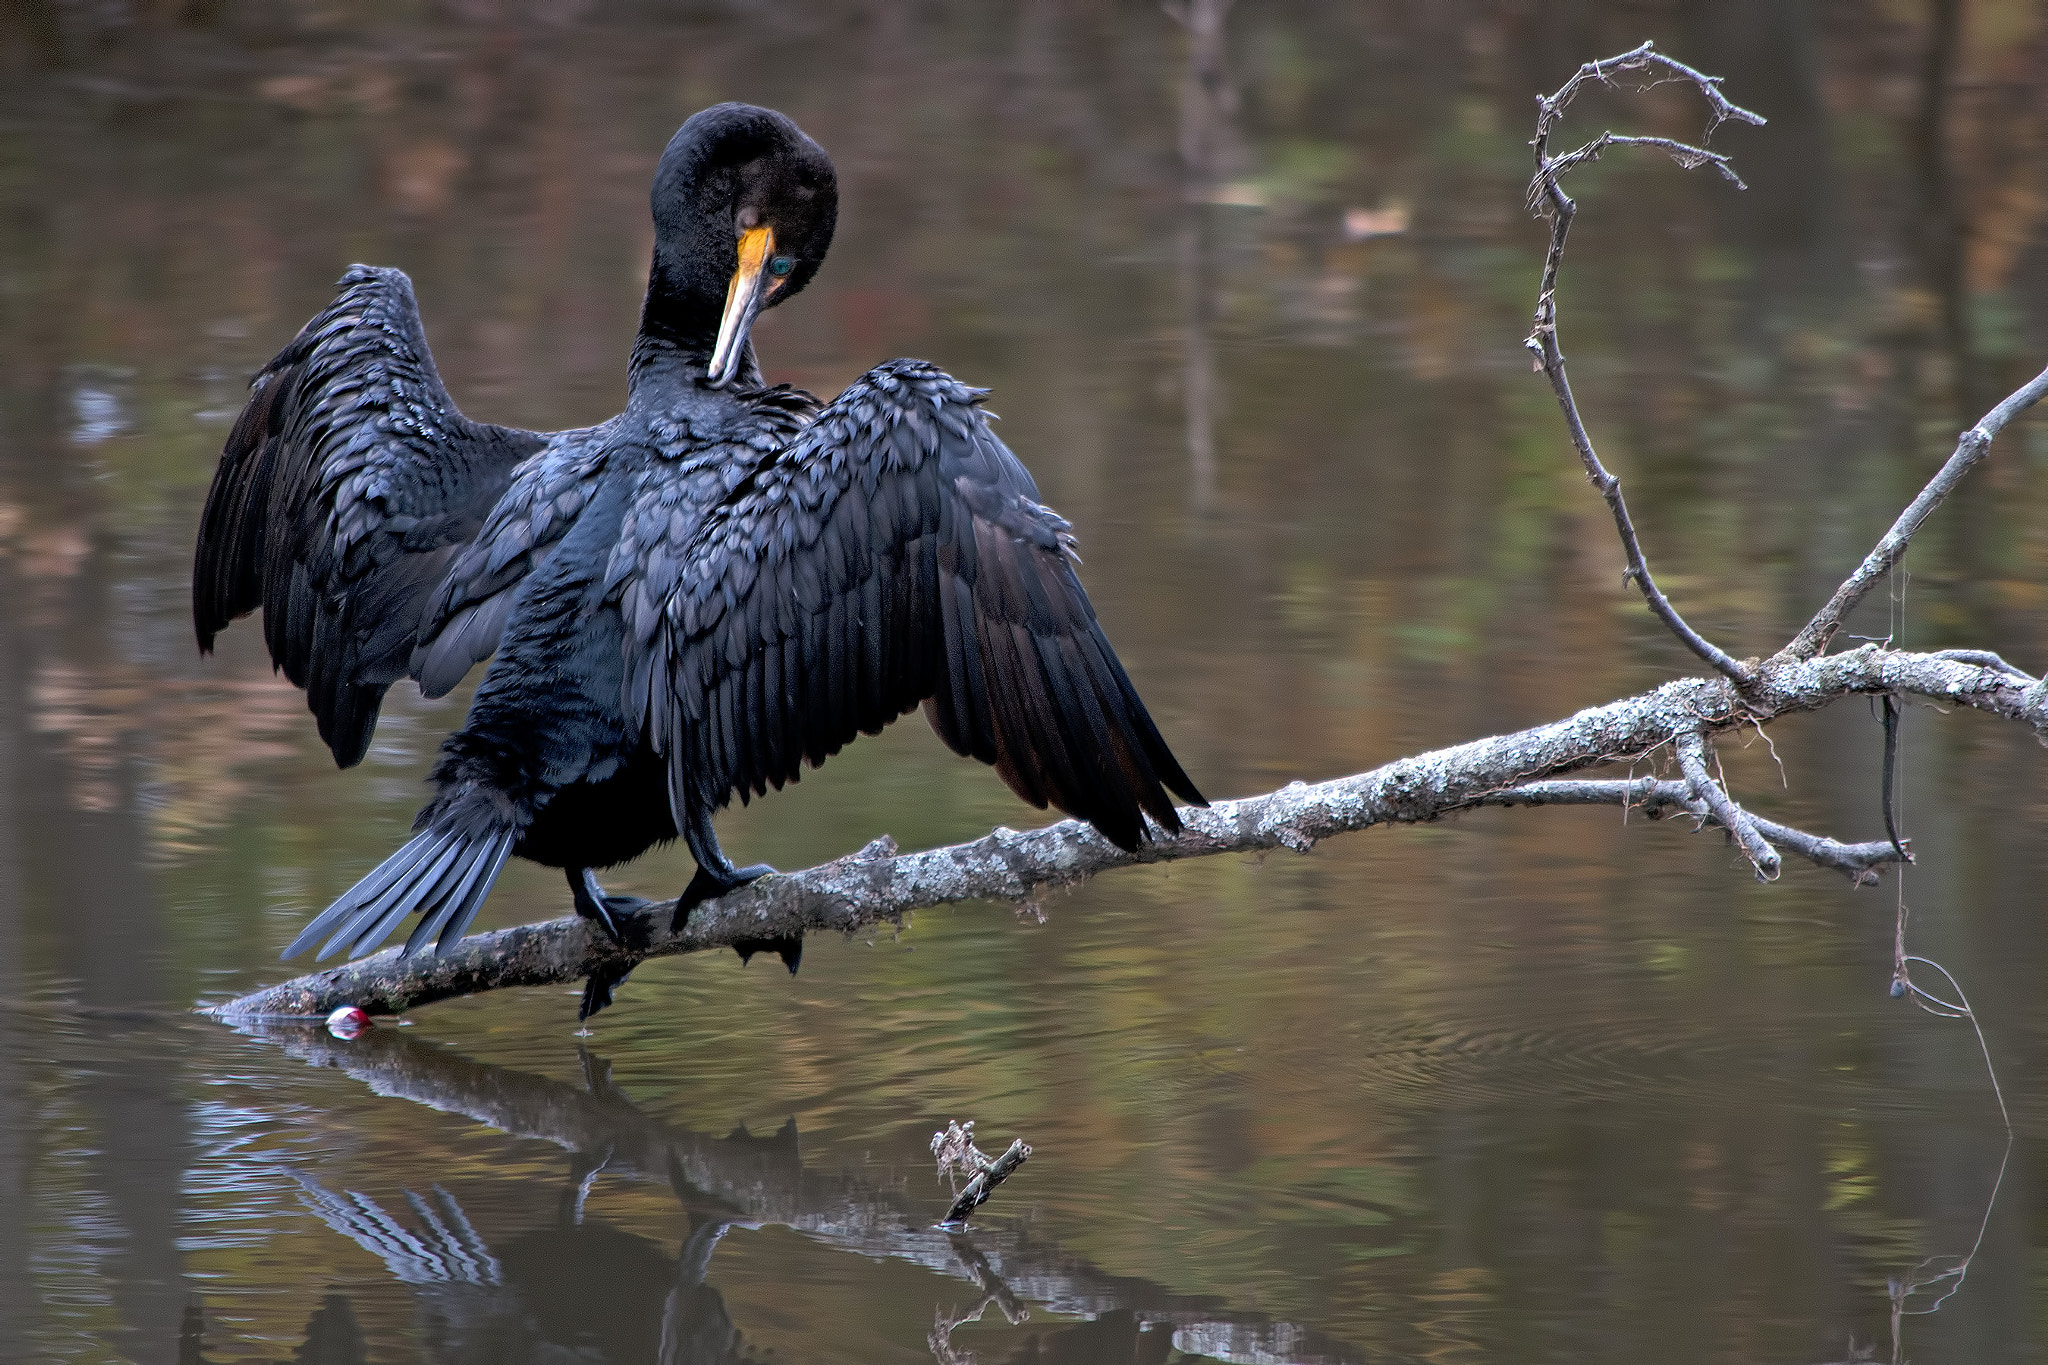 Photograph Cormorant by Heather Conley on 500px